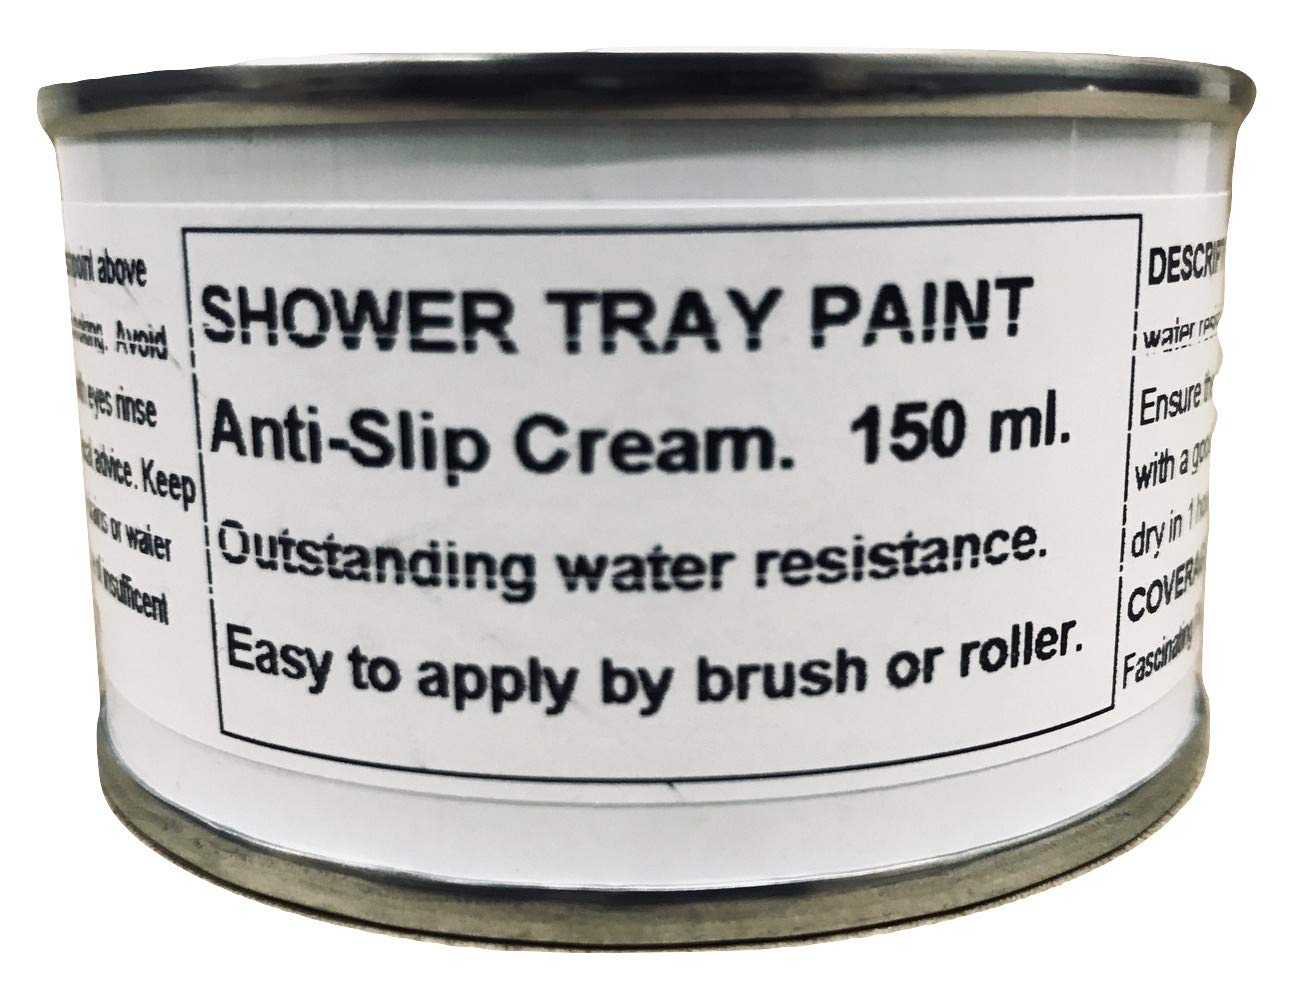 1 x 150ml Cream Anti Slip Shower Tray And Bath Paint Fascinating Finishes Ltd